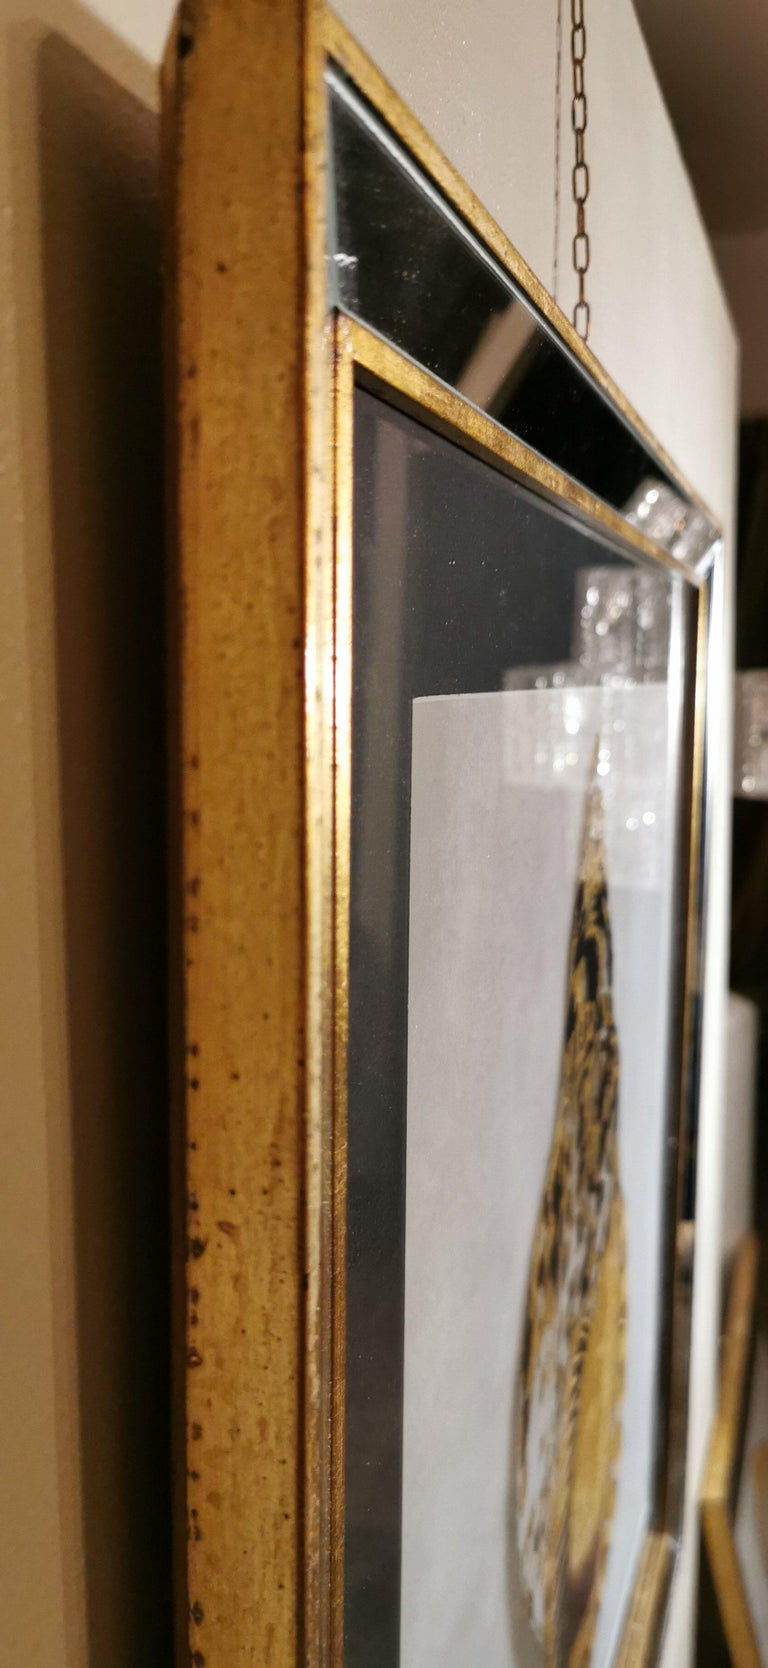 Contemporary Italian Golden Shell Print, Gilded Wood Frame with Mirror '3 of 4' For Sale 2